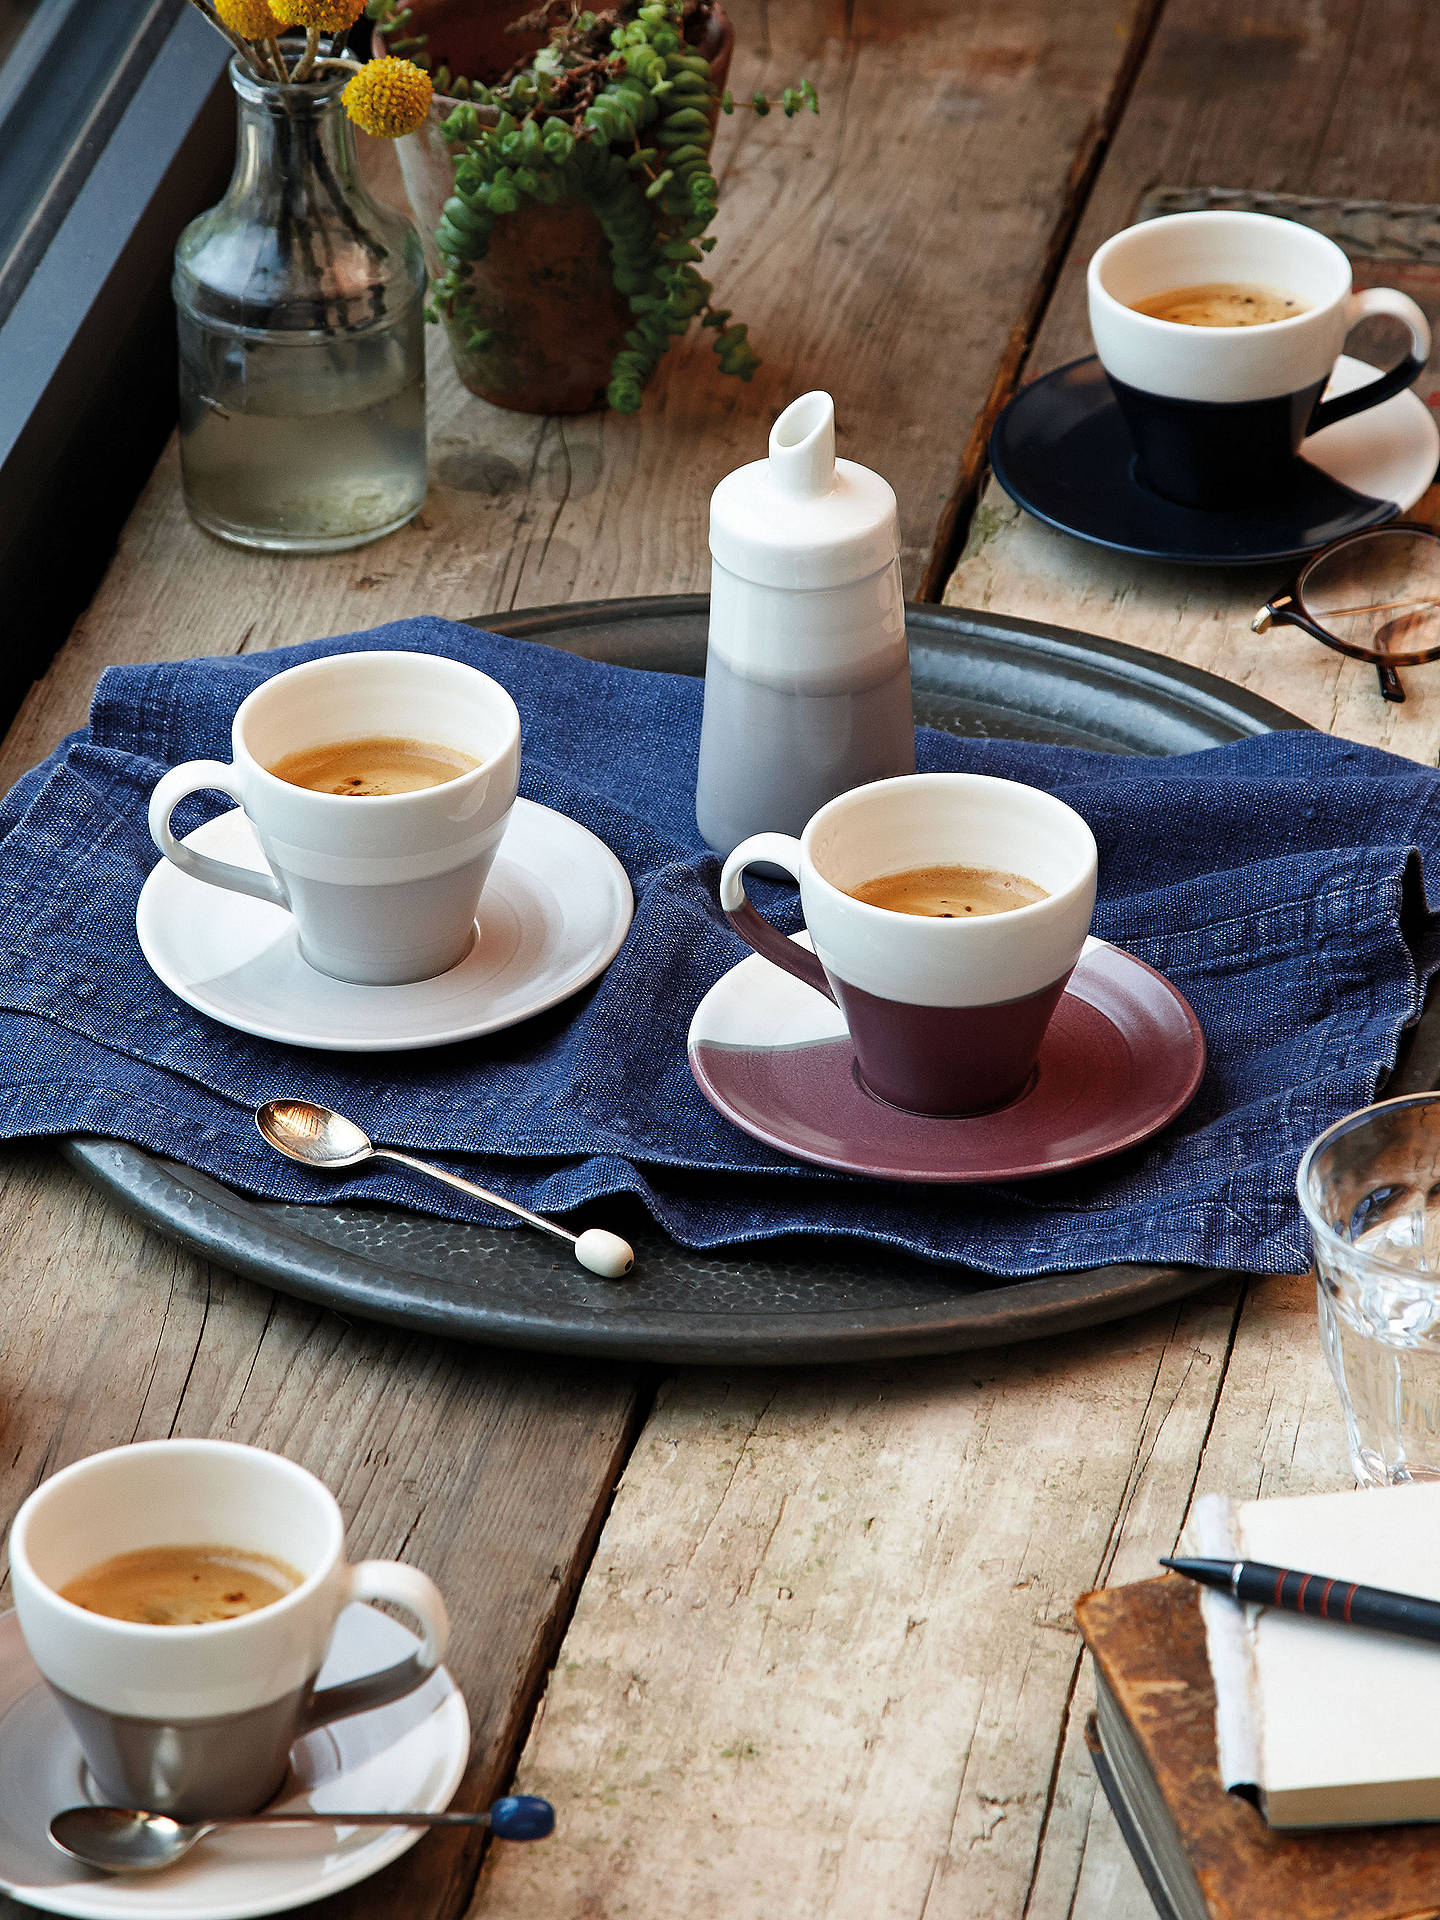 BuyRoyal Doulton Coffee Studio Espresso Cups and Saucers, White/Multi, 256ml, Set of 4 Online at johnlewis.com